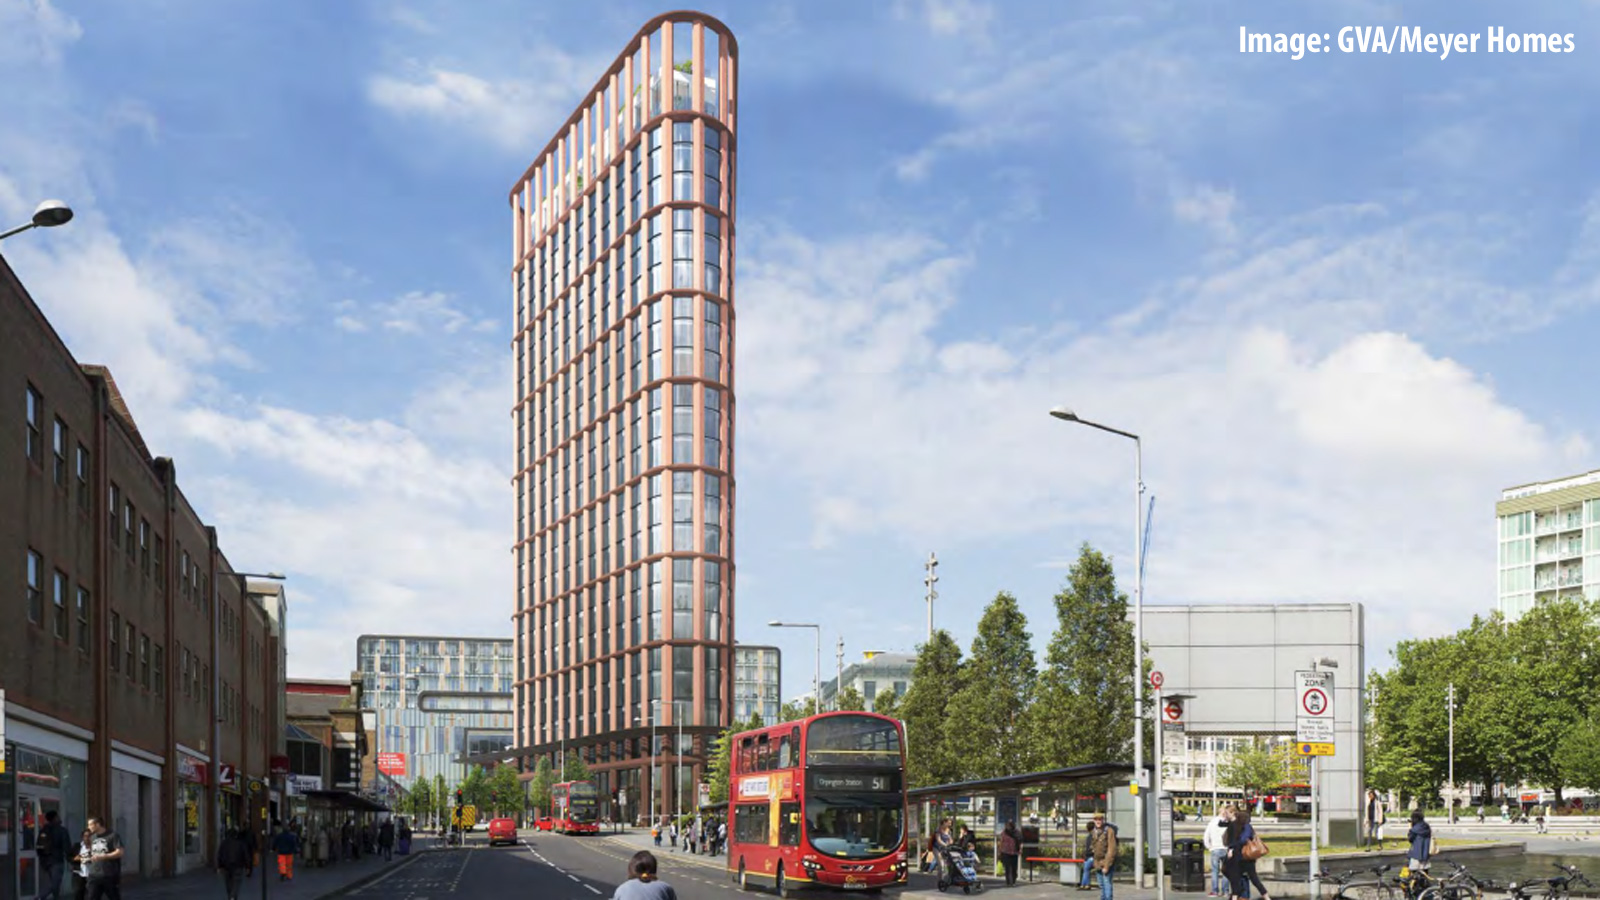 Woolwich's 'overbearing' 27-storey Tesco tower set to be thrown out by Greenwich Council